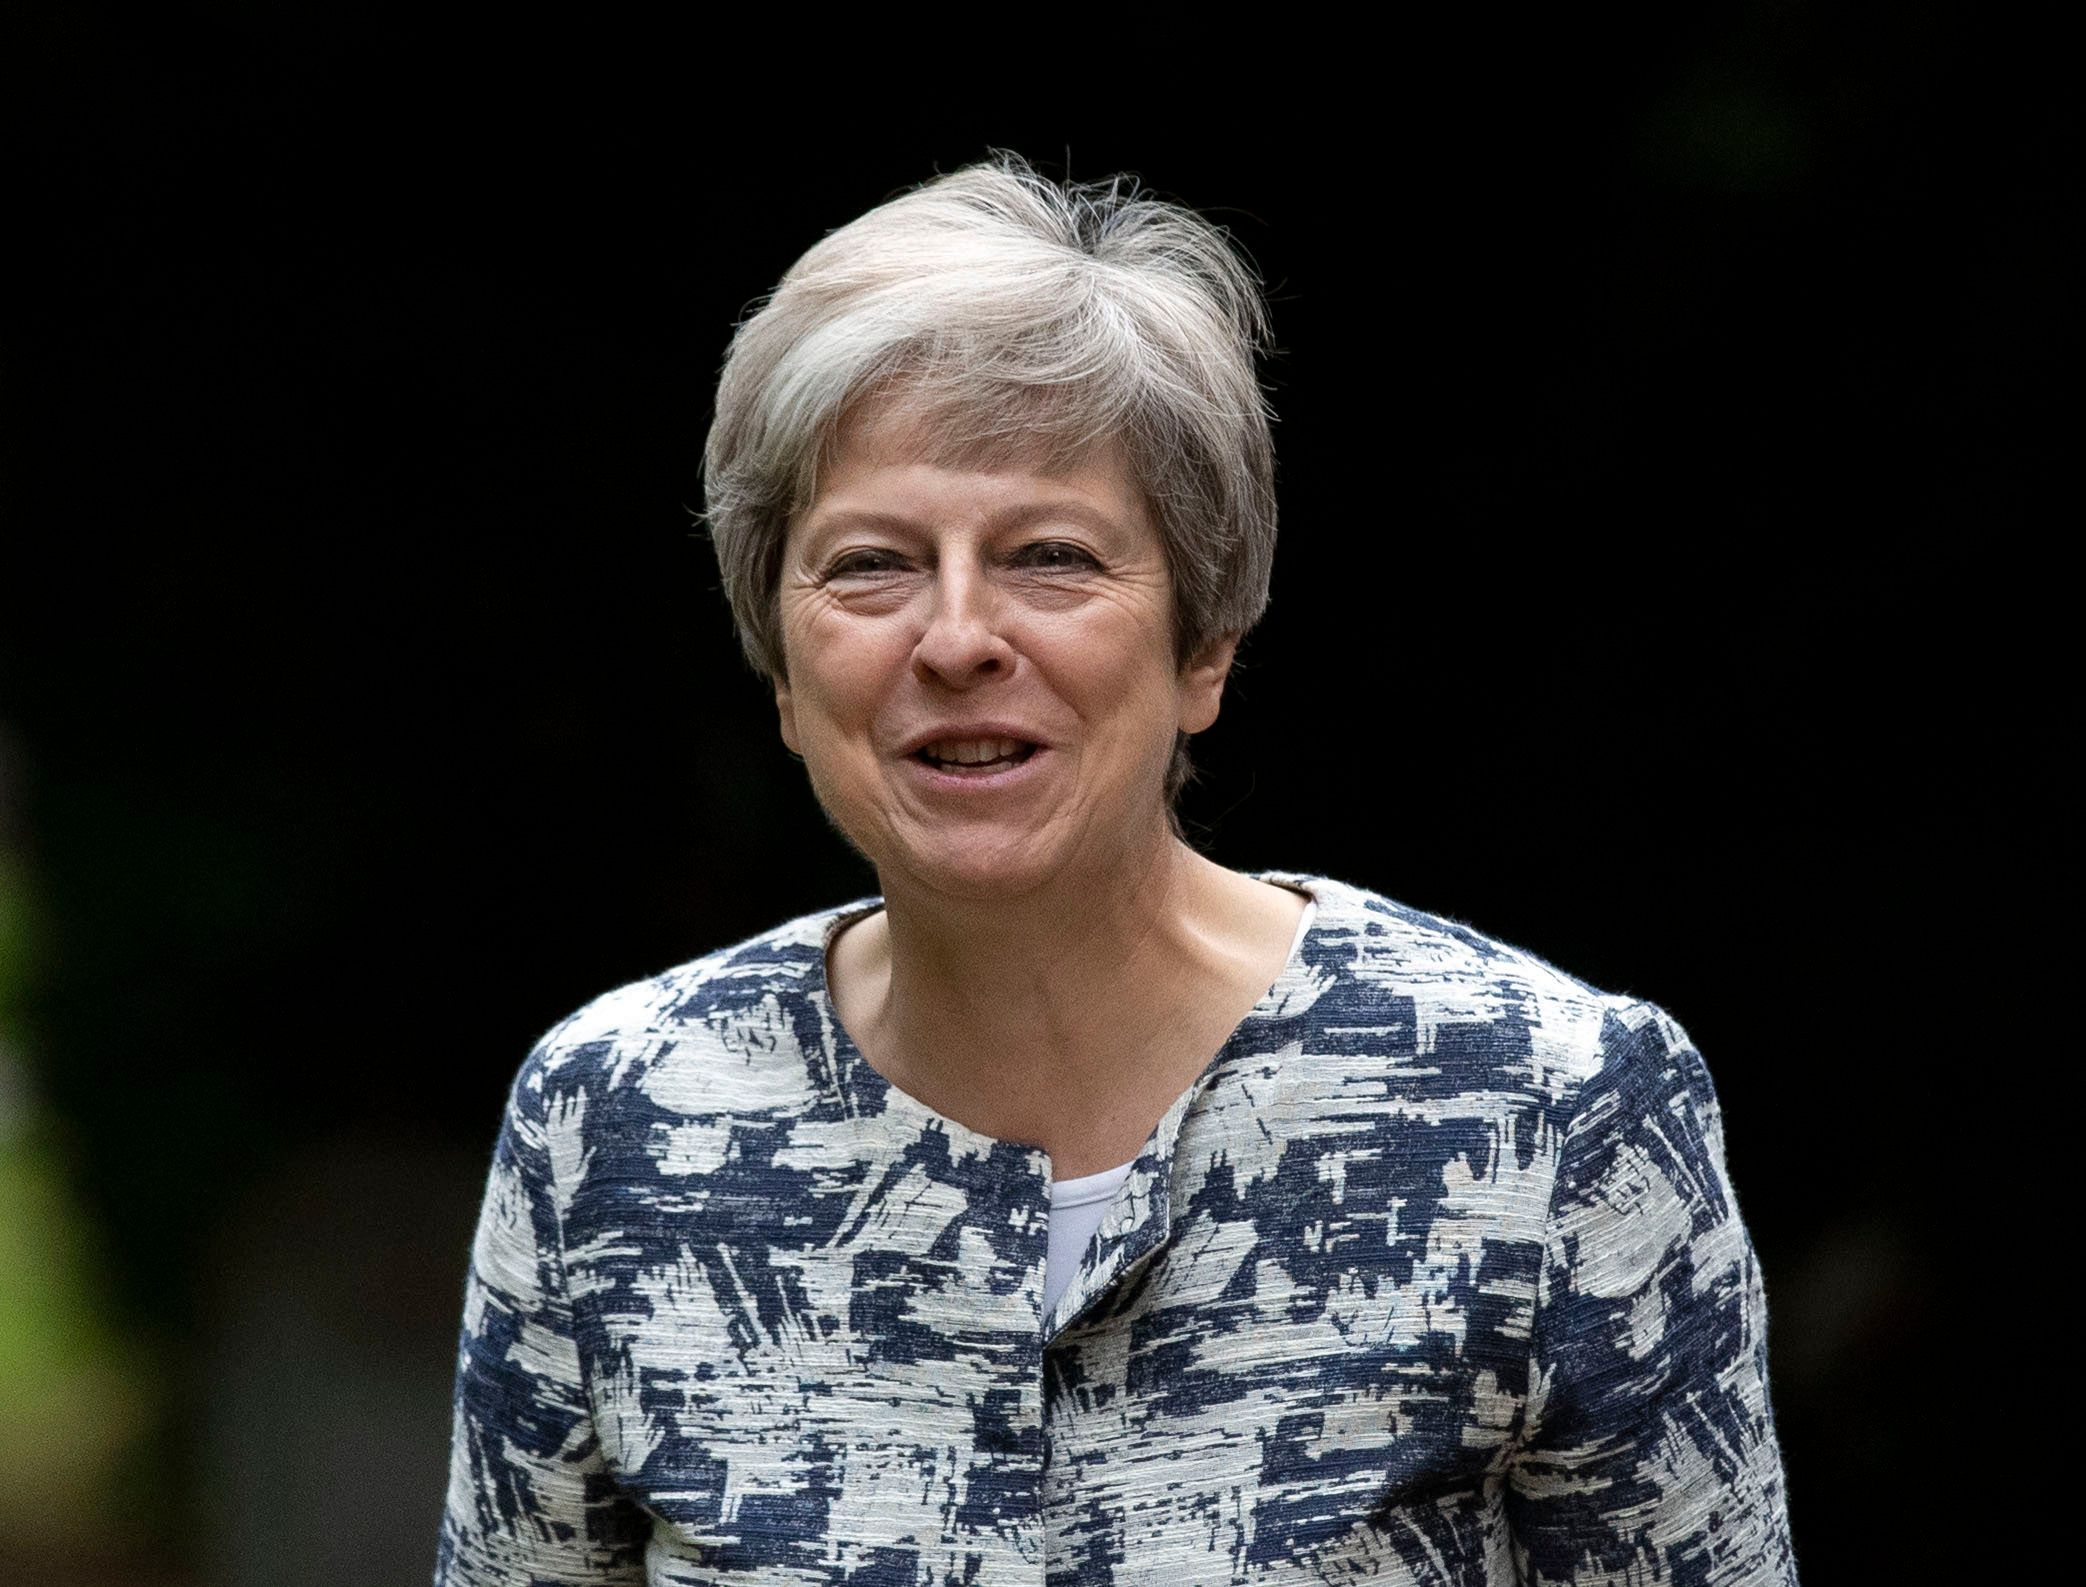 Back To School For Theresa May – And Brexit Is The Biggest Test This